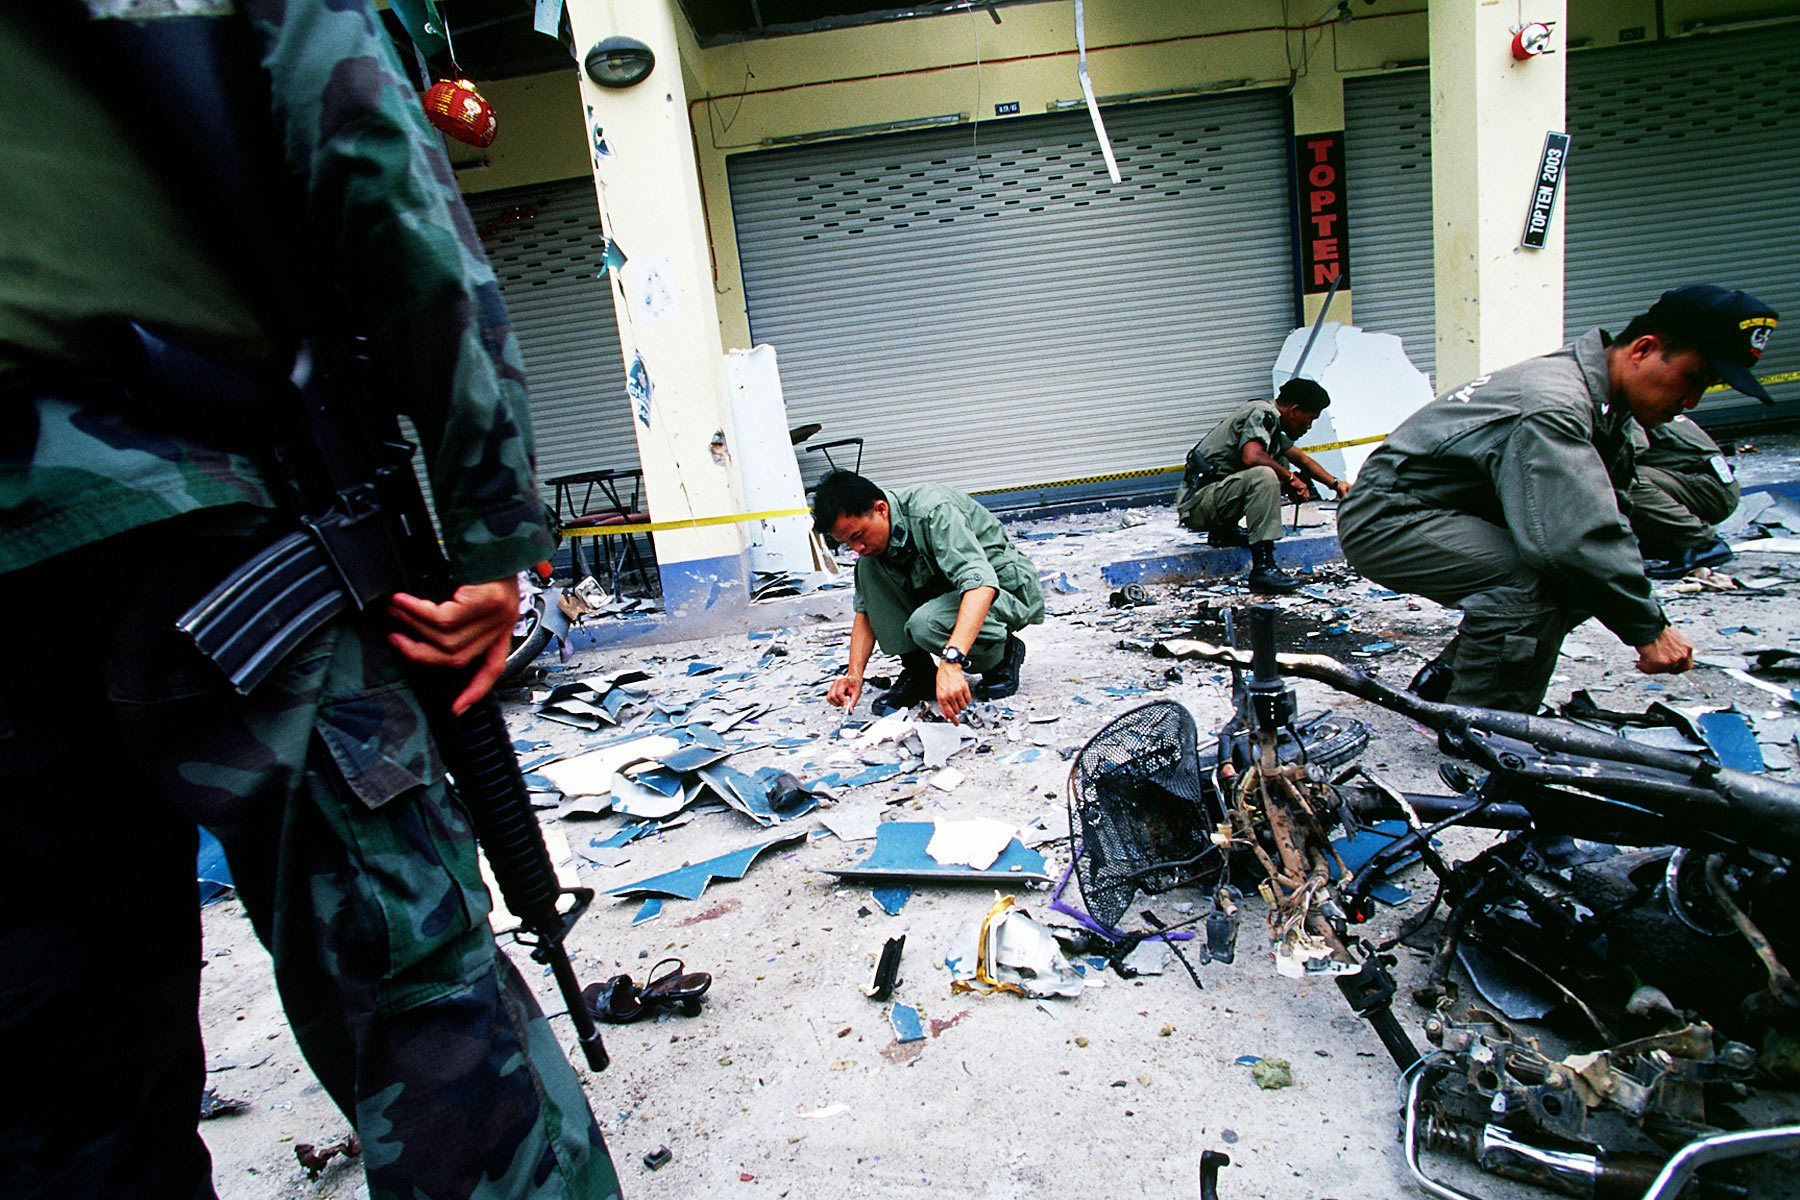 Bombs exploded on the street, killing three people and dozen injured.